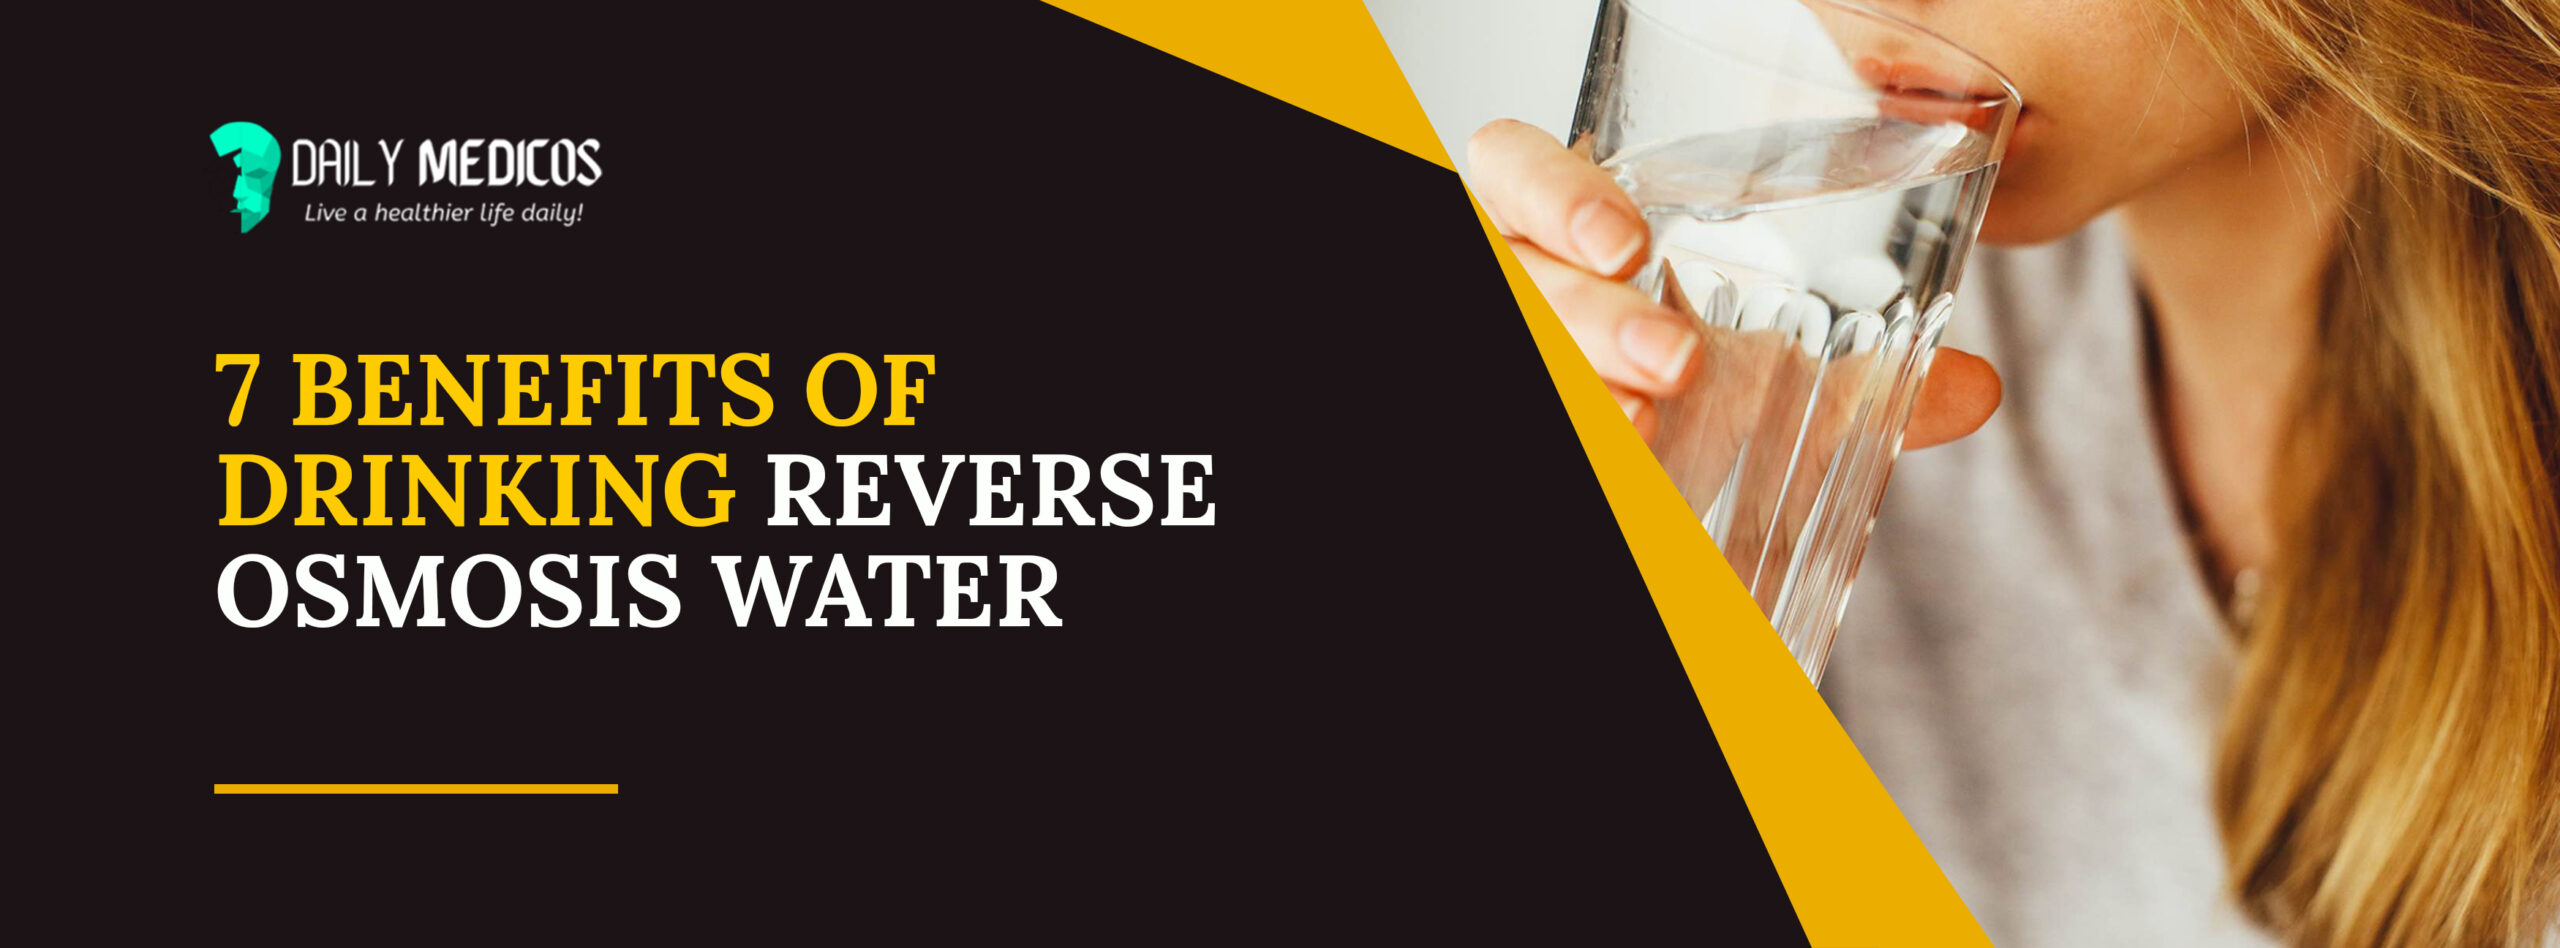 7 Benefits of Drinking Reverse Osmosis Water [Detailed Guide] 25 - Daily Medicos